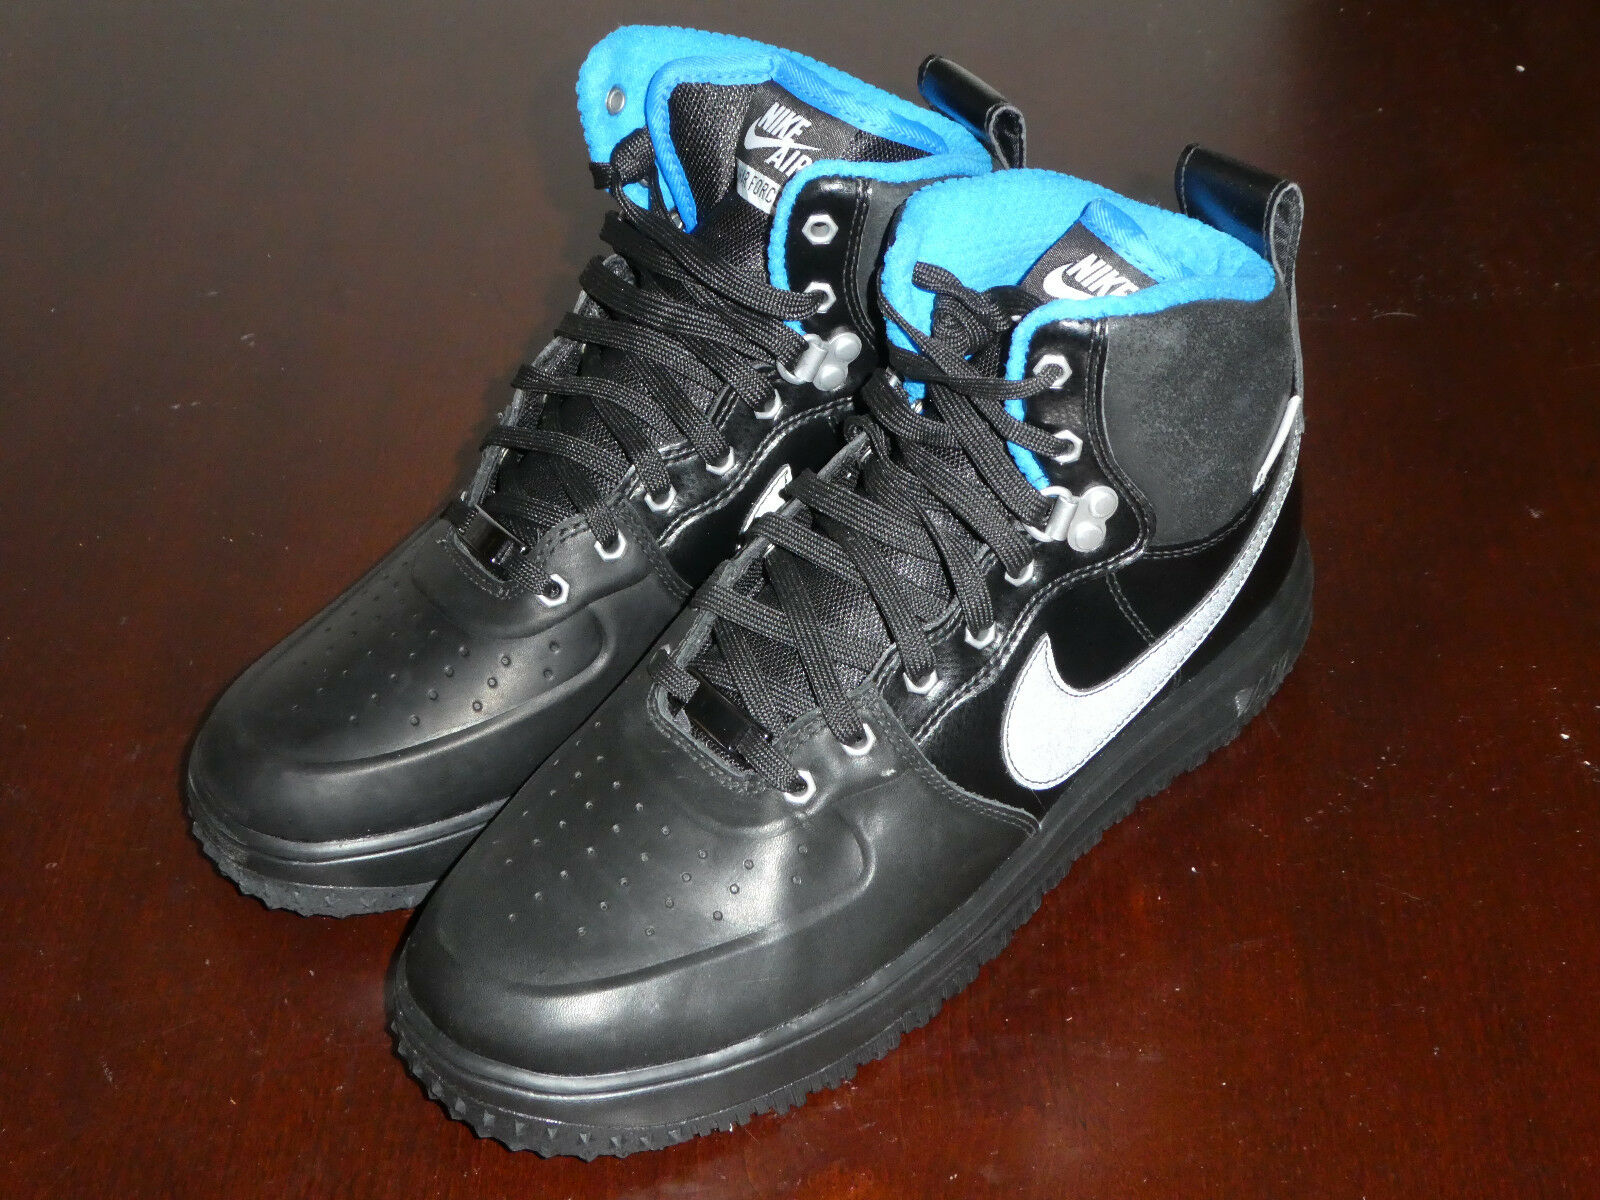 Nike Lunar Force 1 sneakerboot boots shoes mens new 654481 003 Great discount